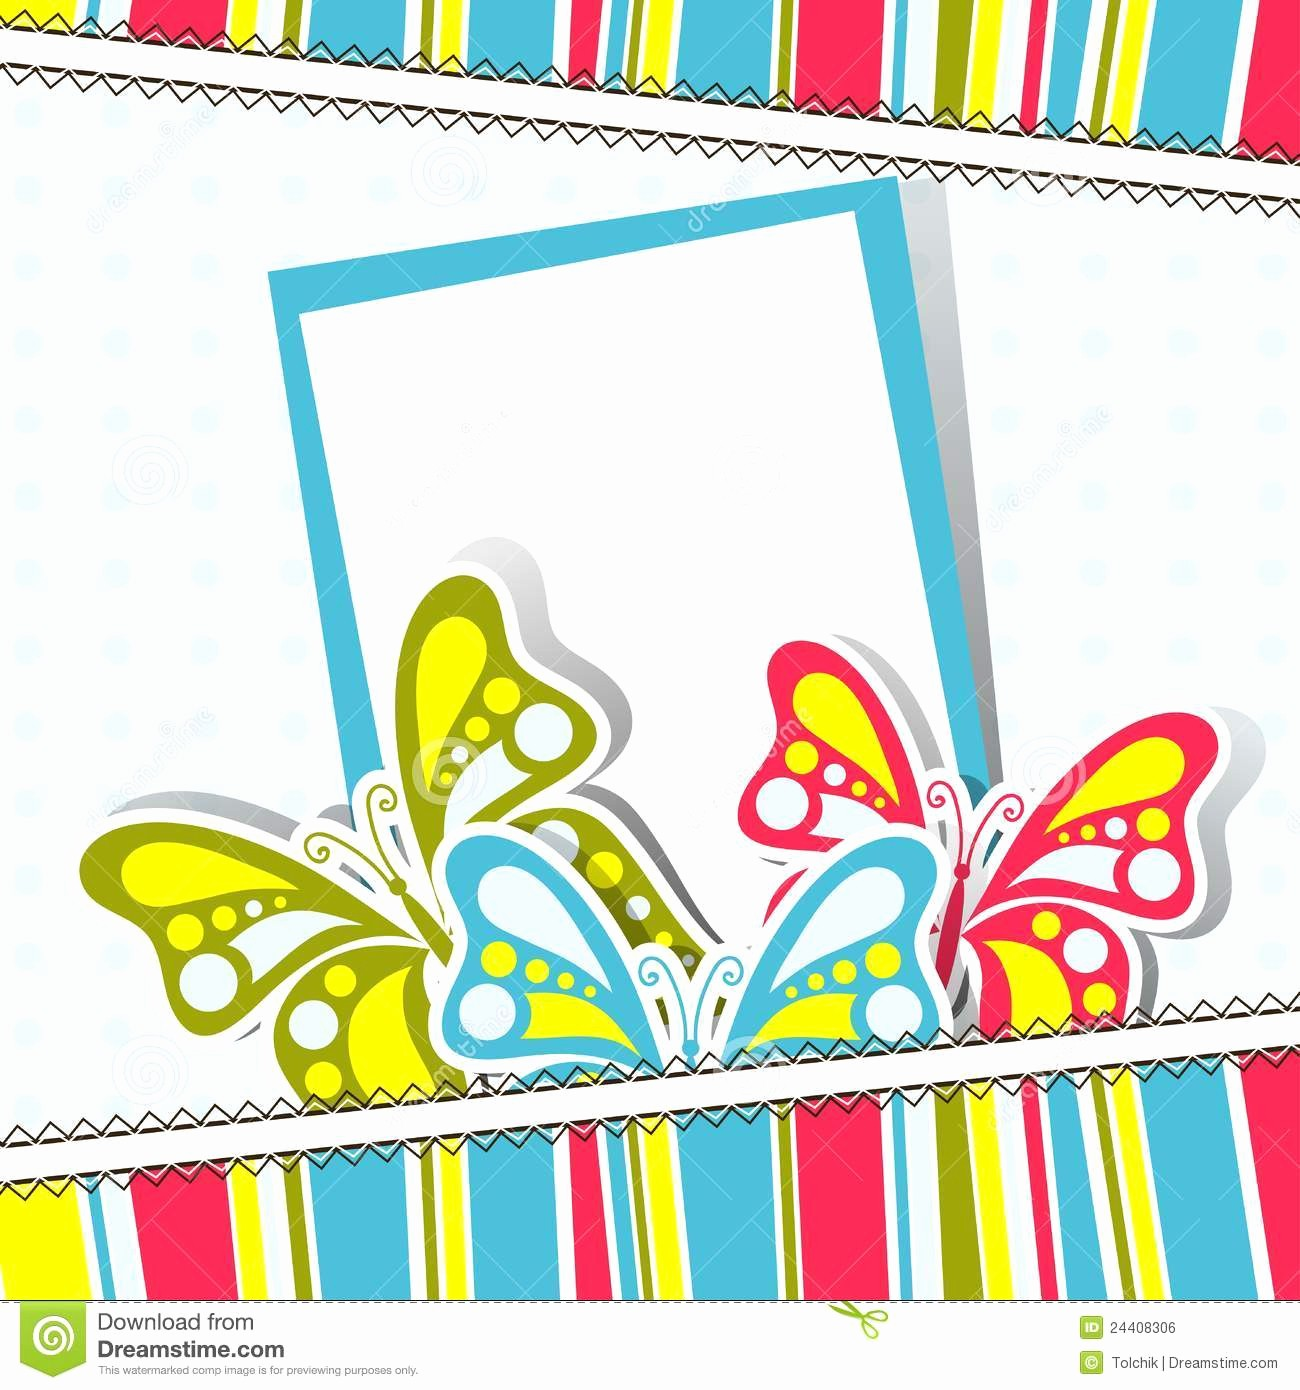 Greeting Cards Templates Free Downloads Best Of Template Greeting Card Vector Stock Vector Illustration